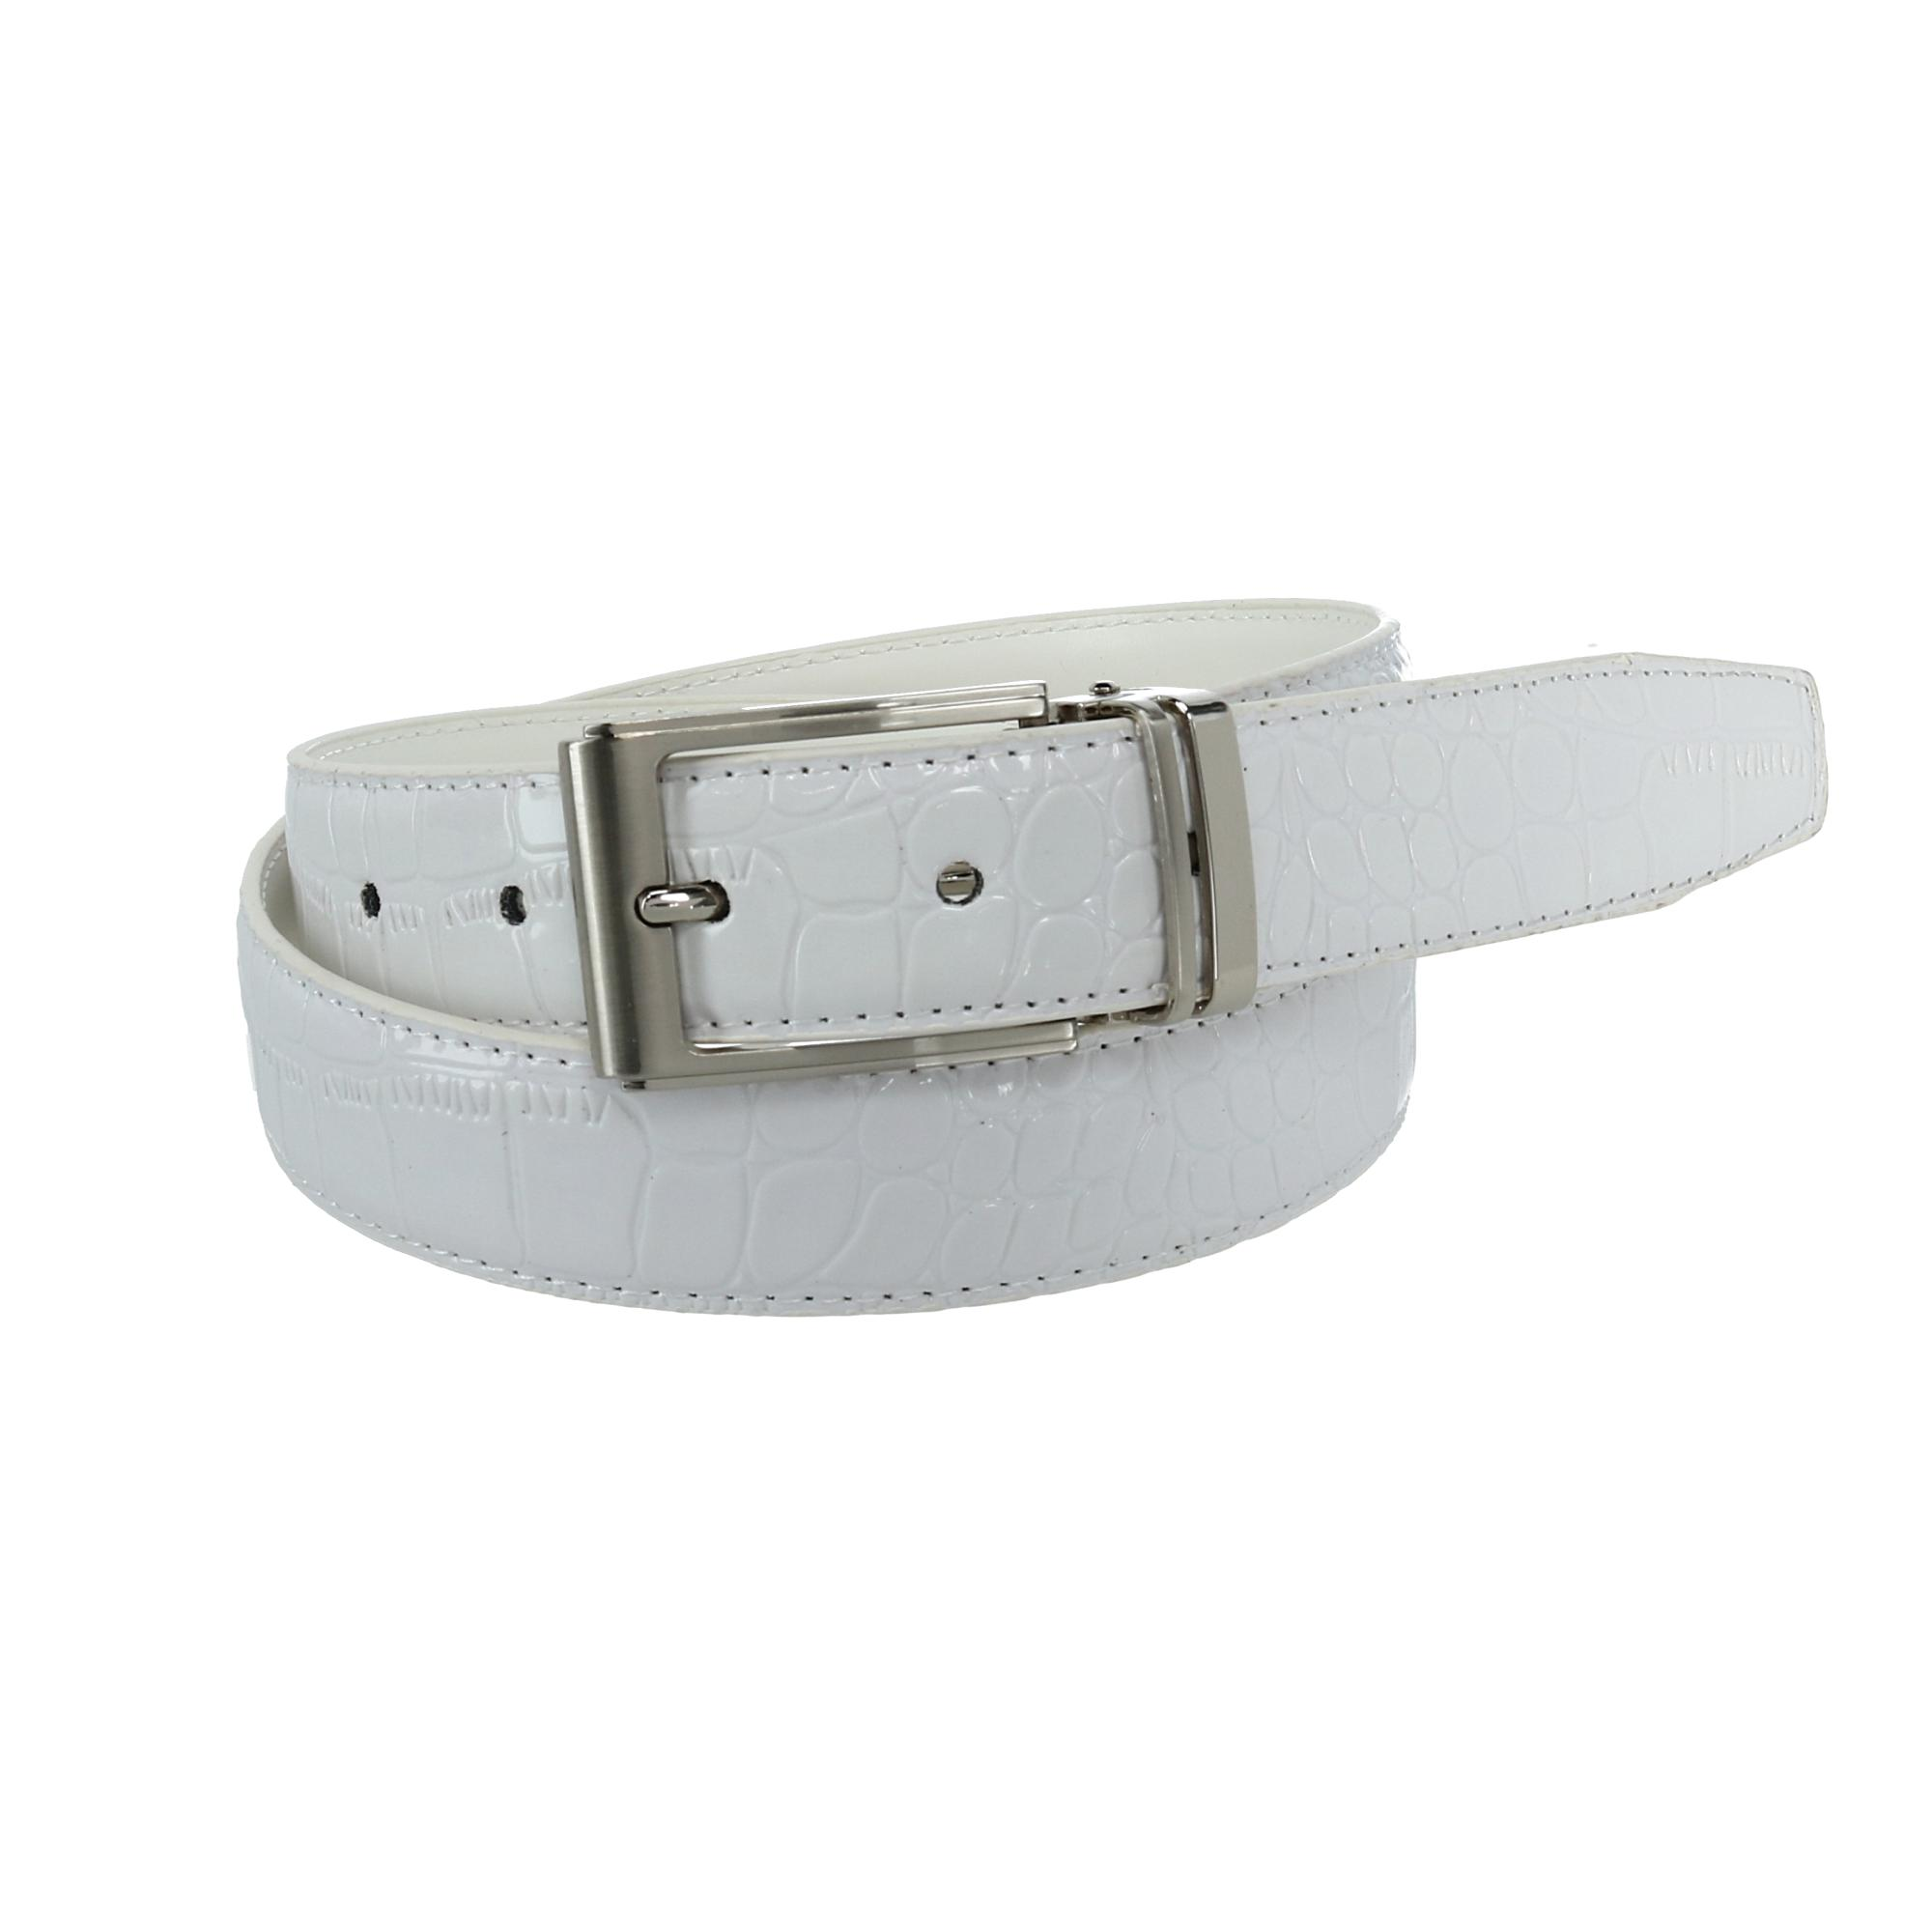 CTM_Leather_Croc_Print_Dress_Belt_with_Clamp_On_Buckle_-_White_42